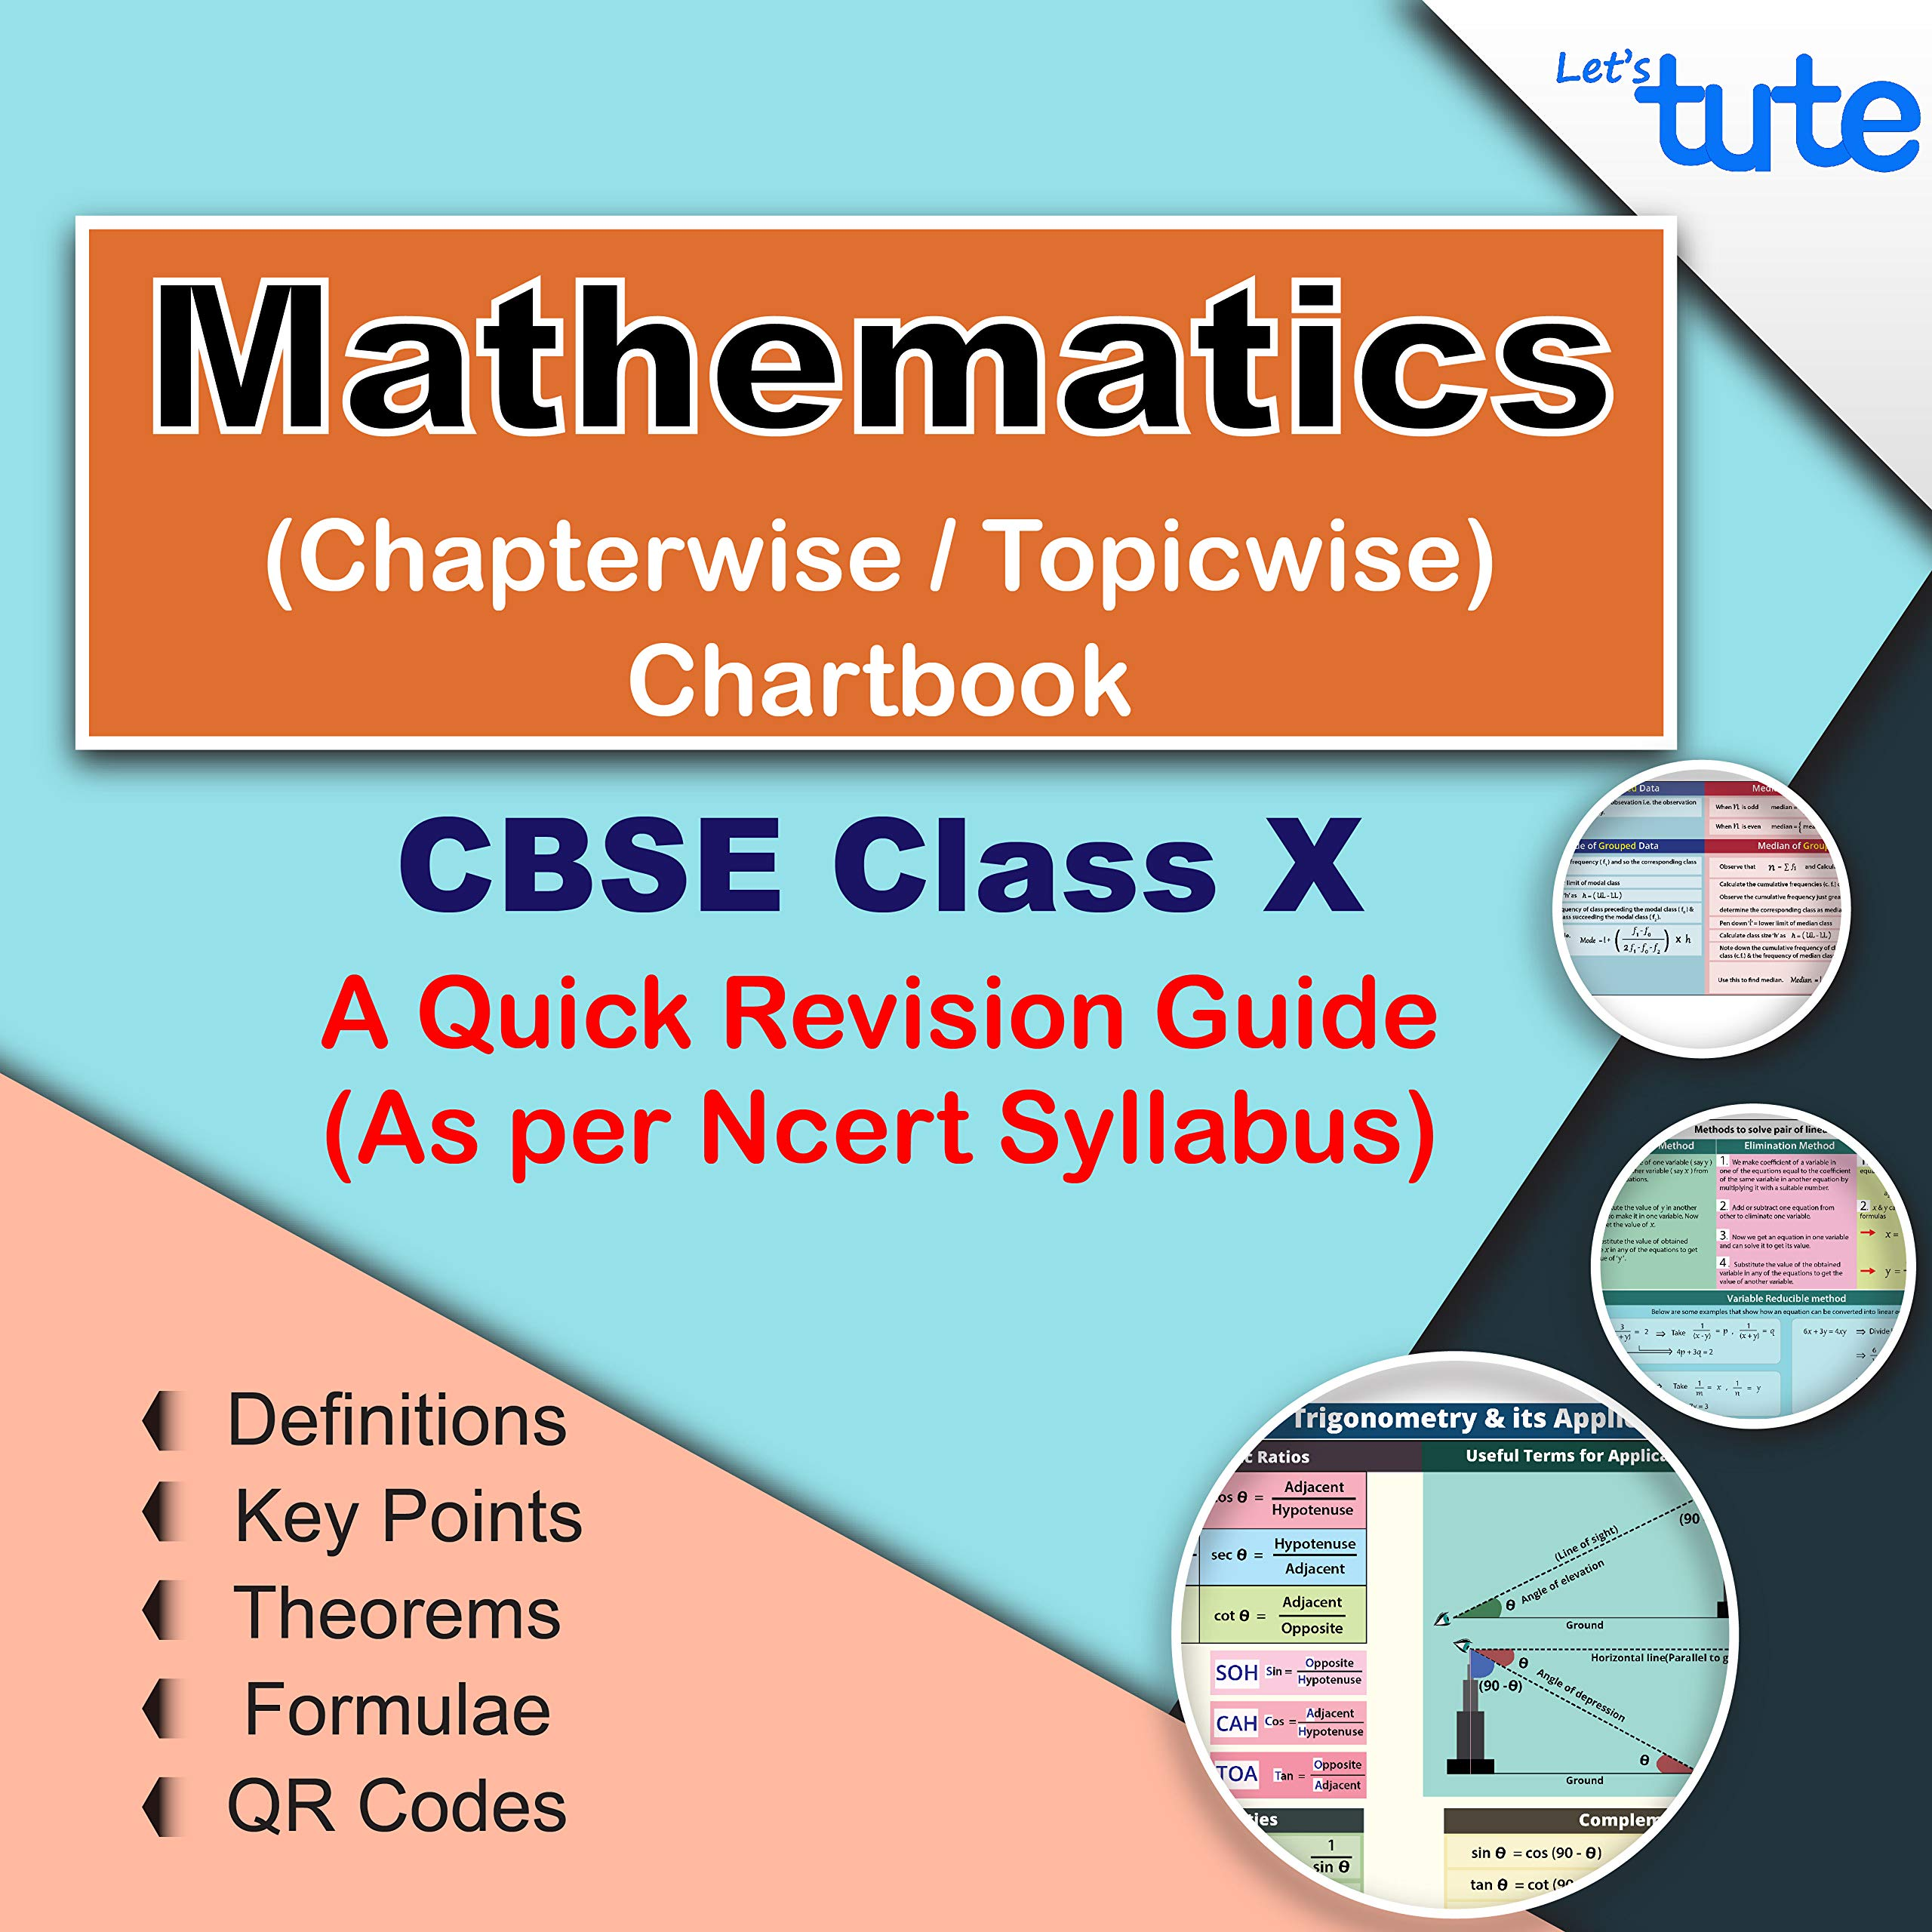 Mathematics Topicwise / Chapterwise Charts With Formula For